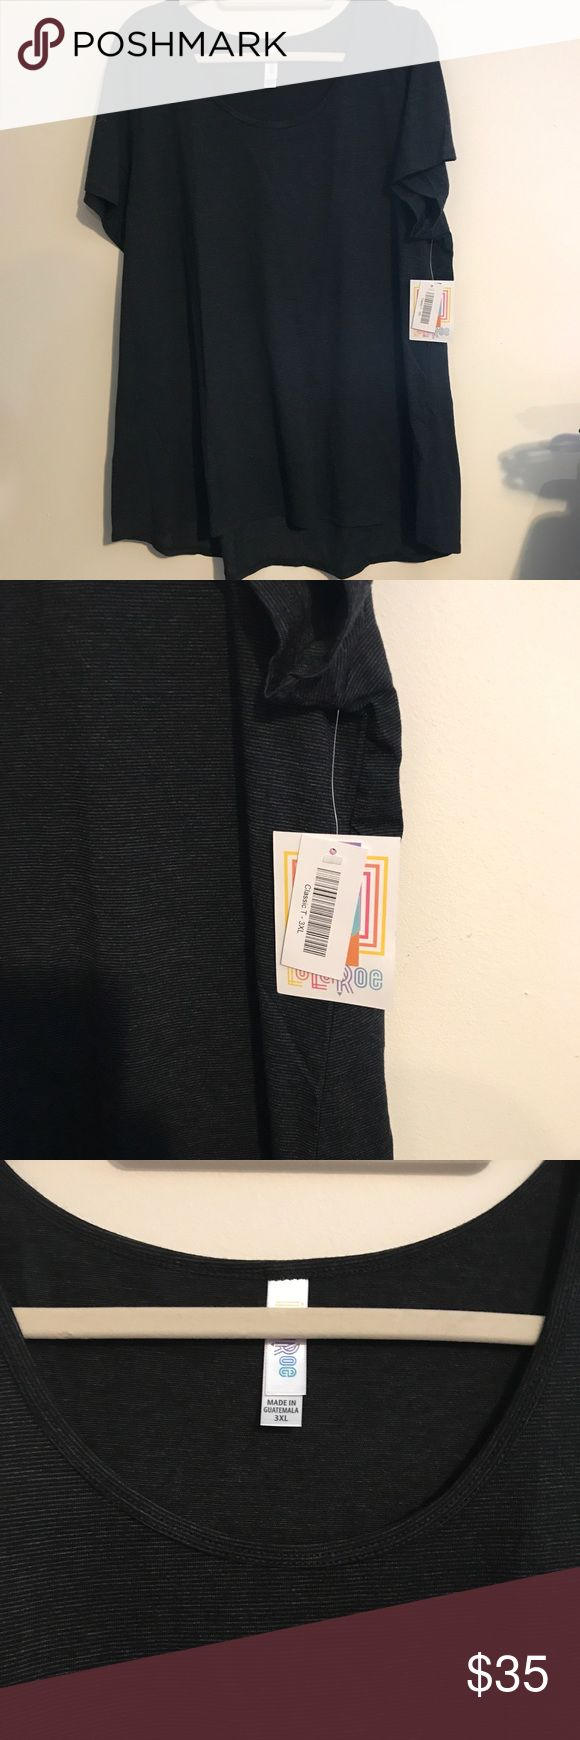 BNWT LuLaRoe 3X Classic T Dark Gray w/Microstripes BNWT LuLaRoe 3X Classic Tee Dark Gray w/ Microstripes. Coveted style in neutral color! This top is very lightweight and perfect for layering. Classic tees are just that, a classic short sleeve tee shirt, and a bit longer in back. LuLaRoe Tops Tees - Short Sleeve